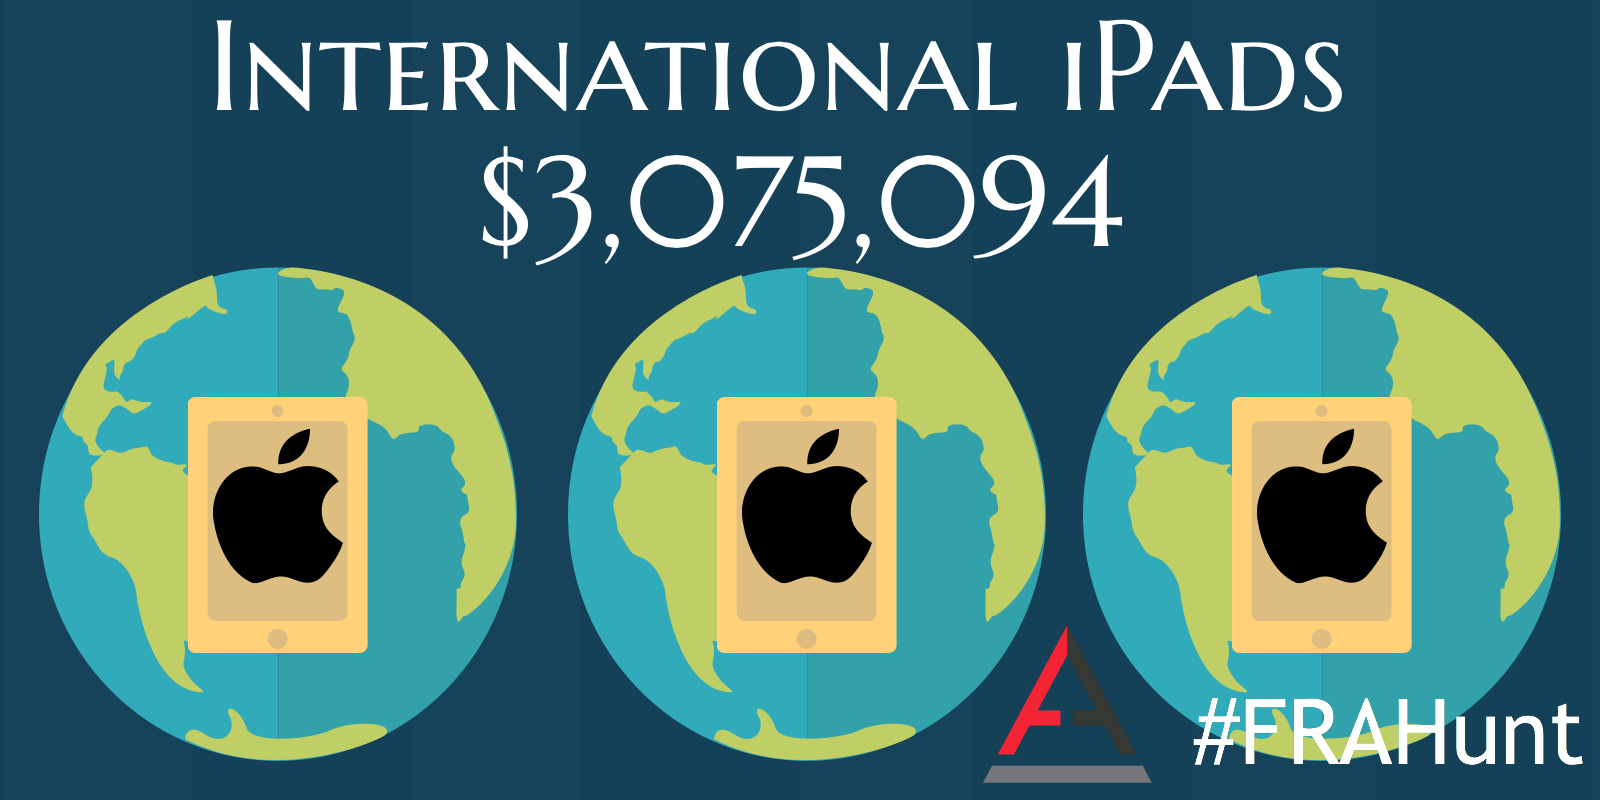 International iPads